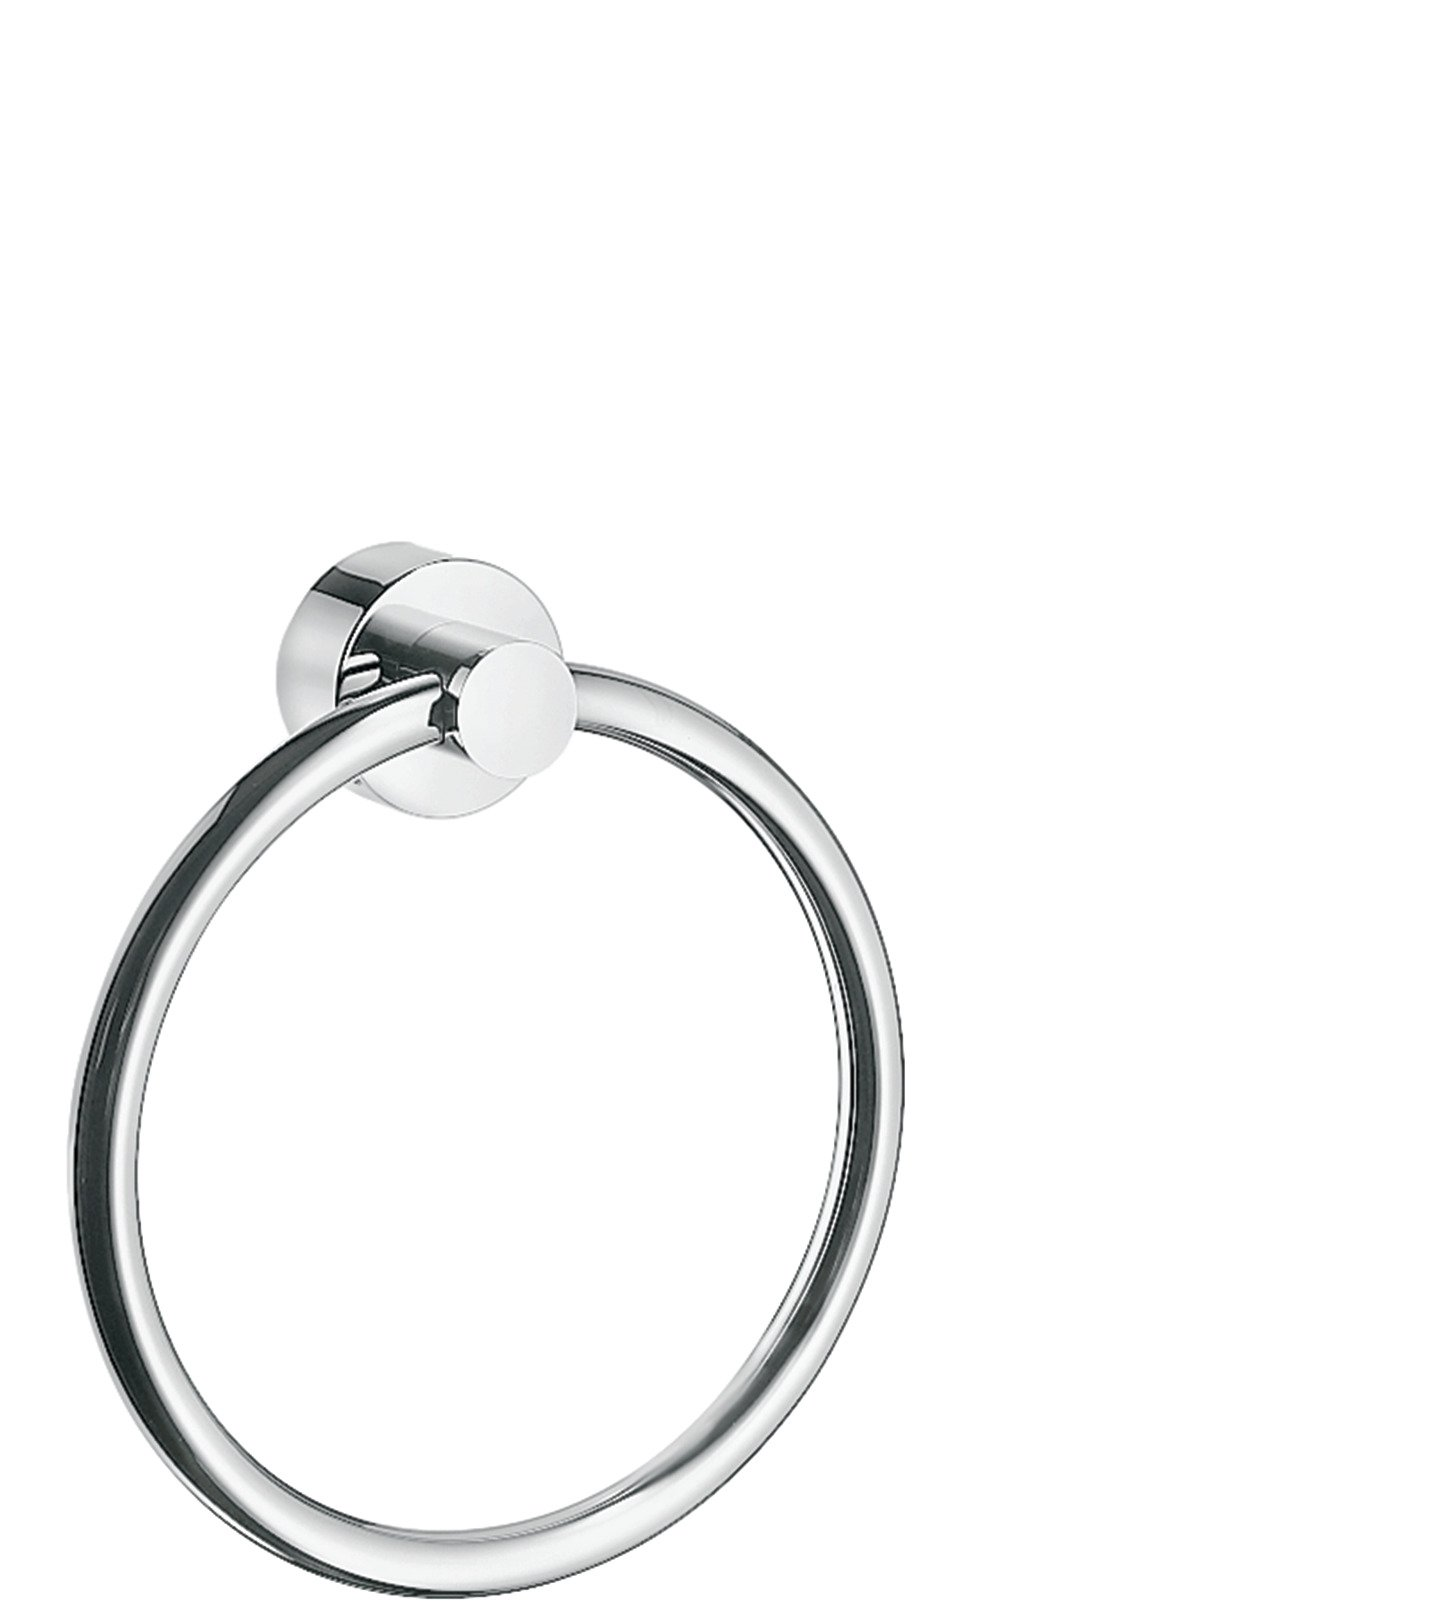 Axor 41521000 Uno Towel Ring in Chrome